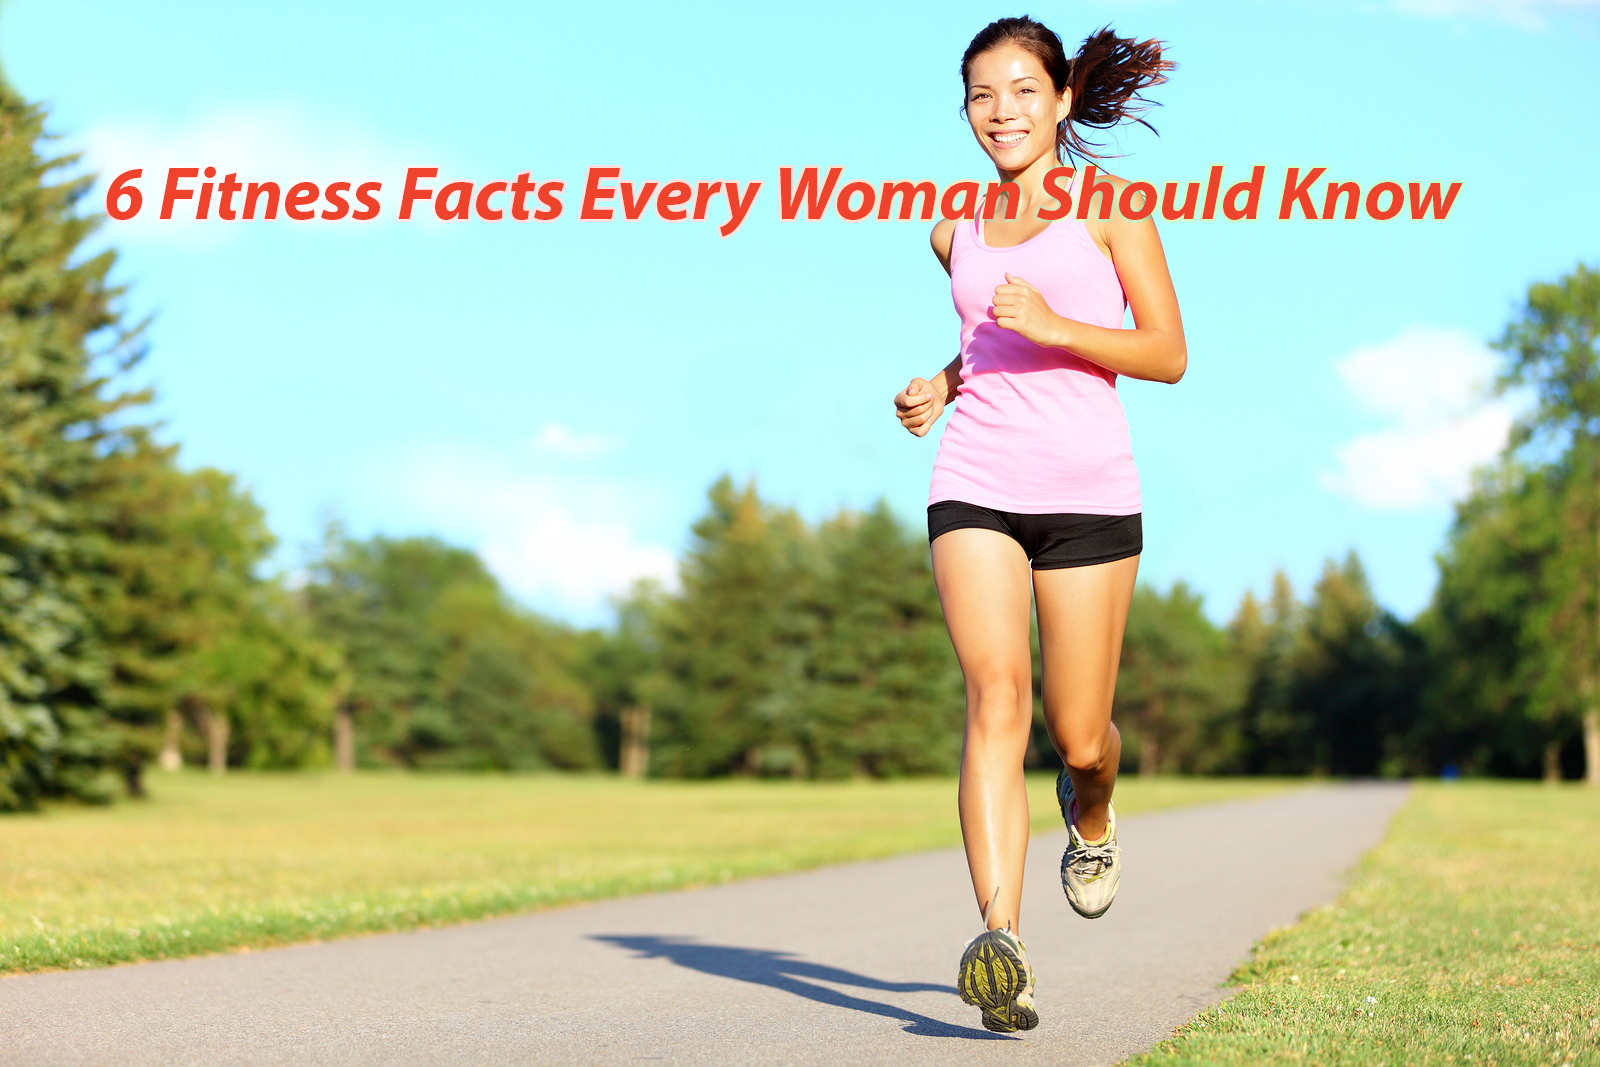 6 Fitness Facts Every Woman Should Know